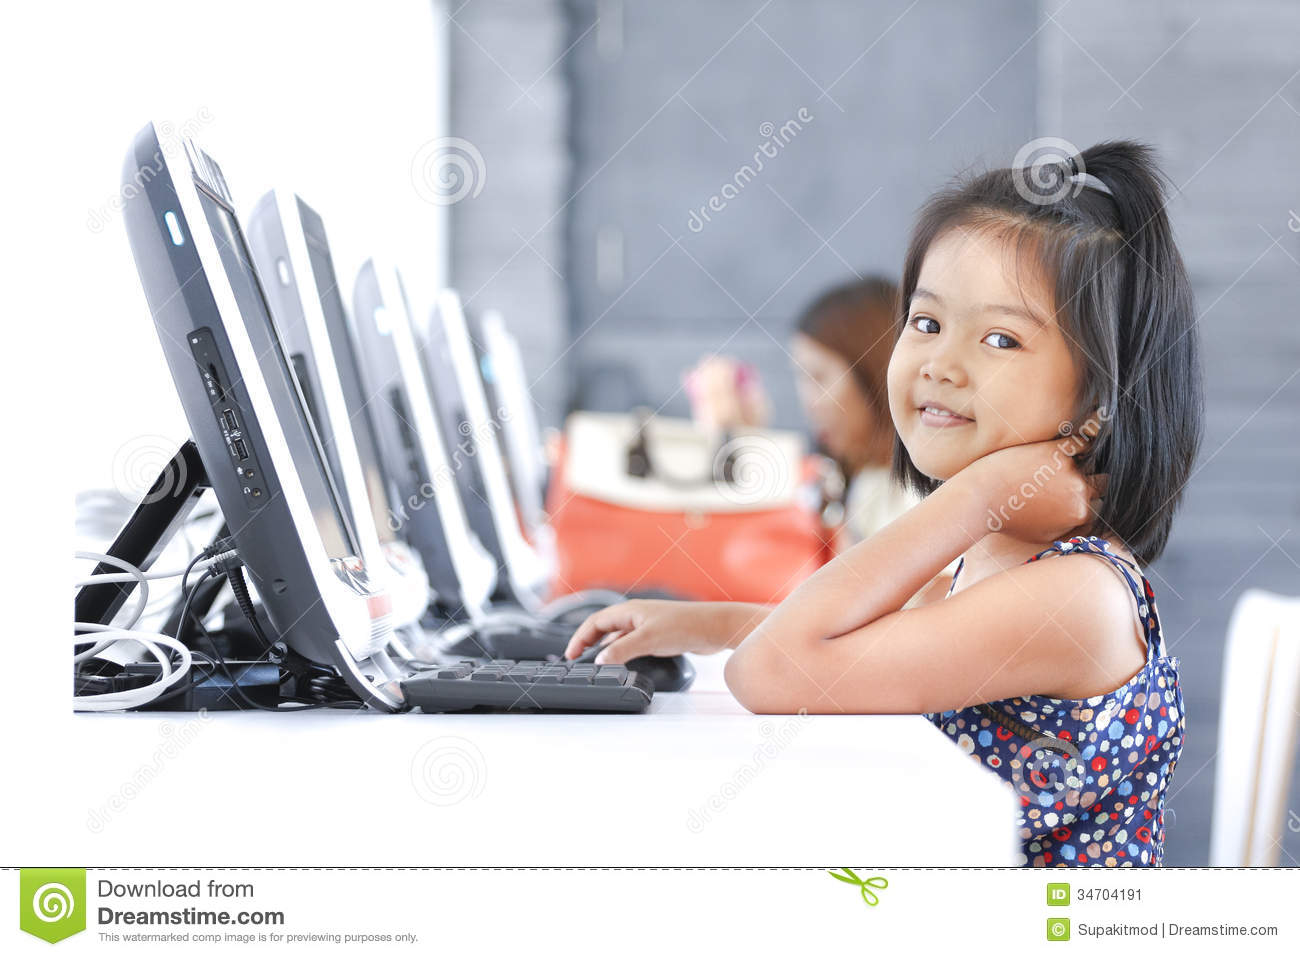 education by computer stock image image of technology